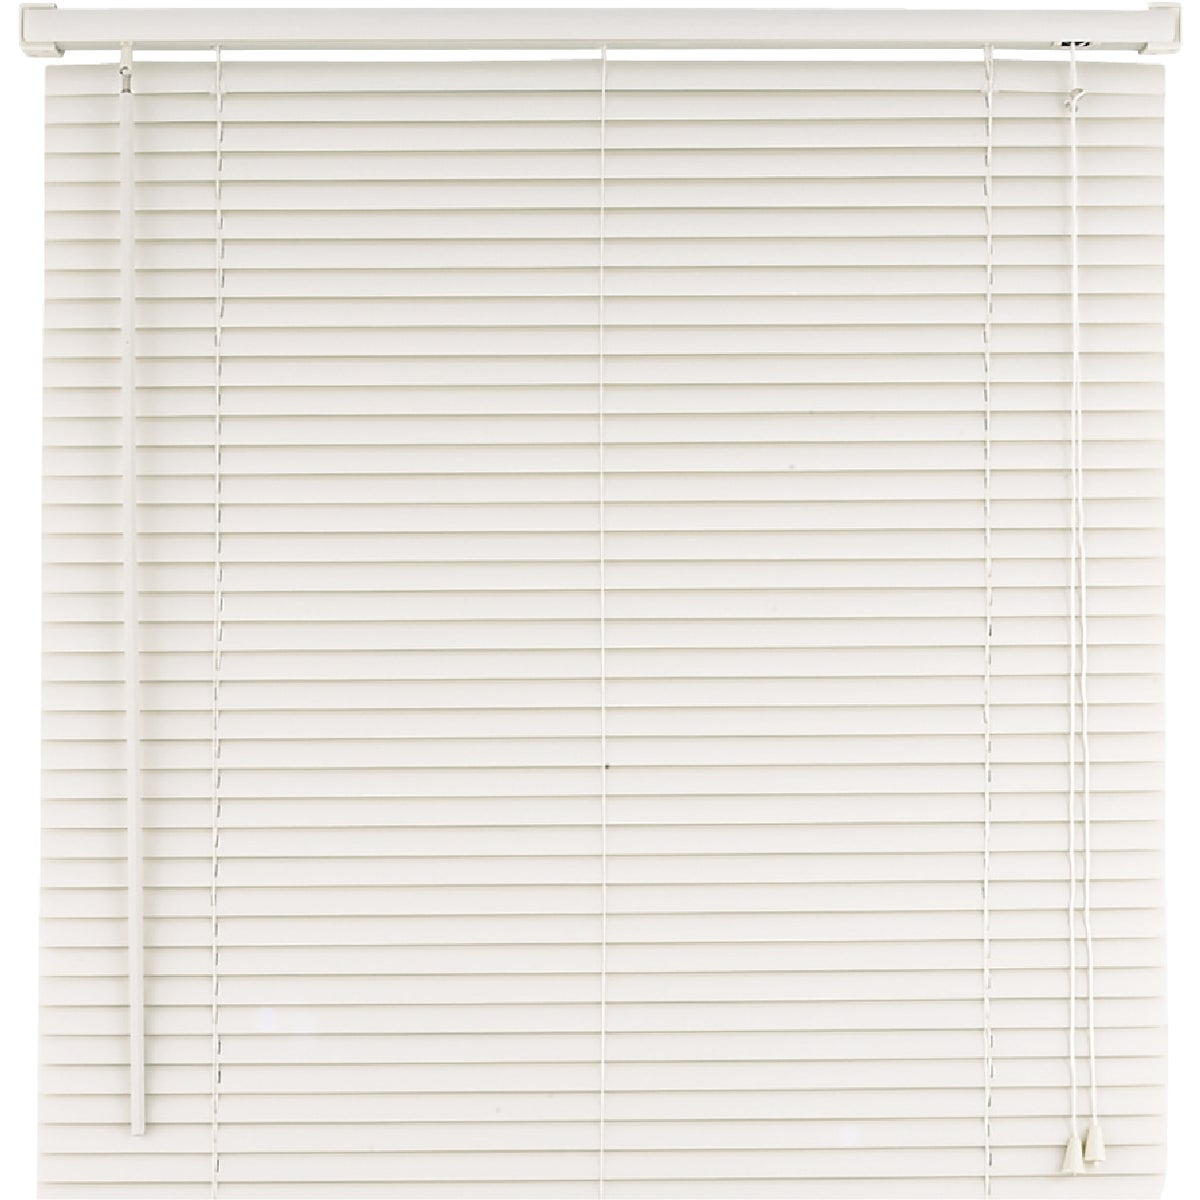 52X64 WHITE BLIND - 5264-152 by Lotus Wind Incom